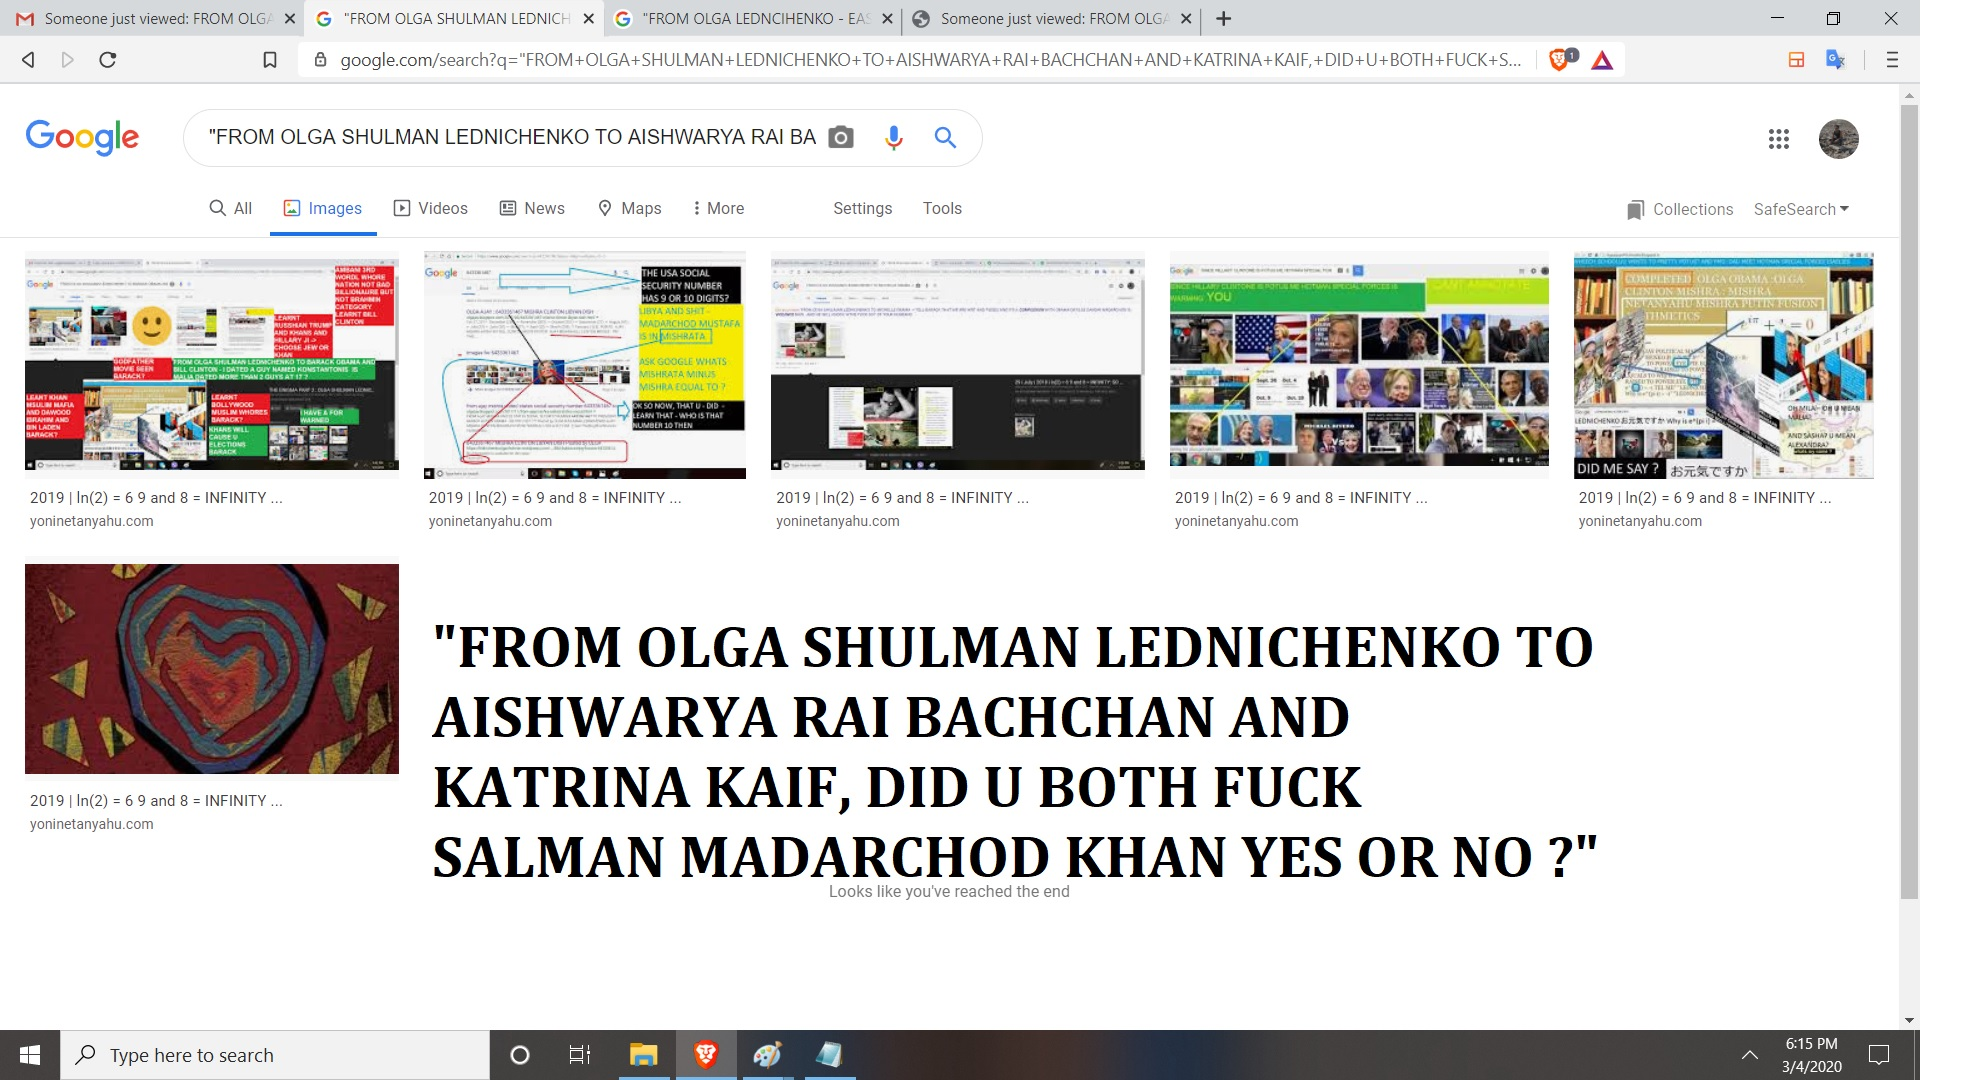 FROM OLGA SHULMAN LEDNICHENKO TO AISHWARYA RAI BACHCHAN AND KATRINA KAIF, DID U BOTH FUCK SALMAN MADARCHOD KHAN YES OR NO